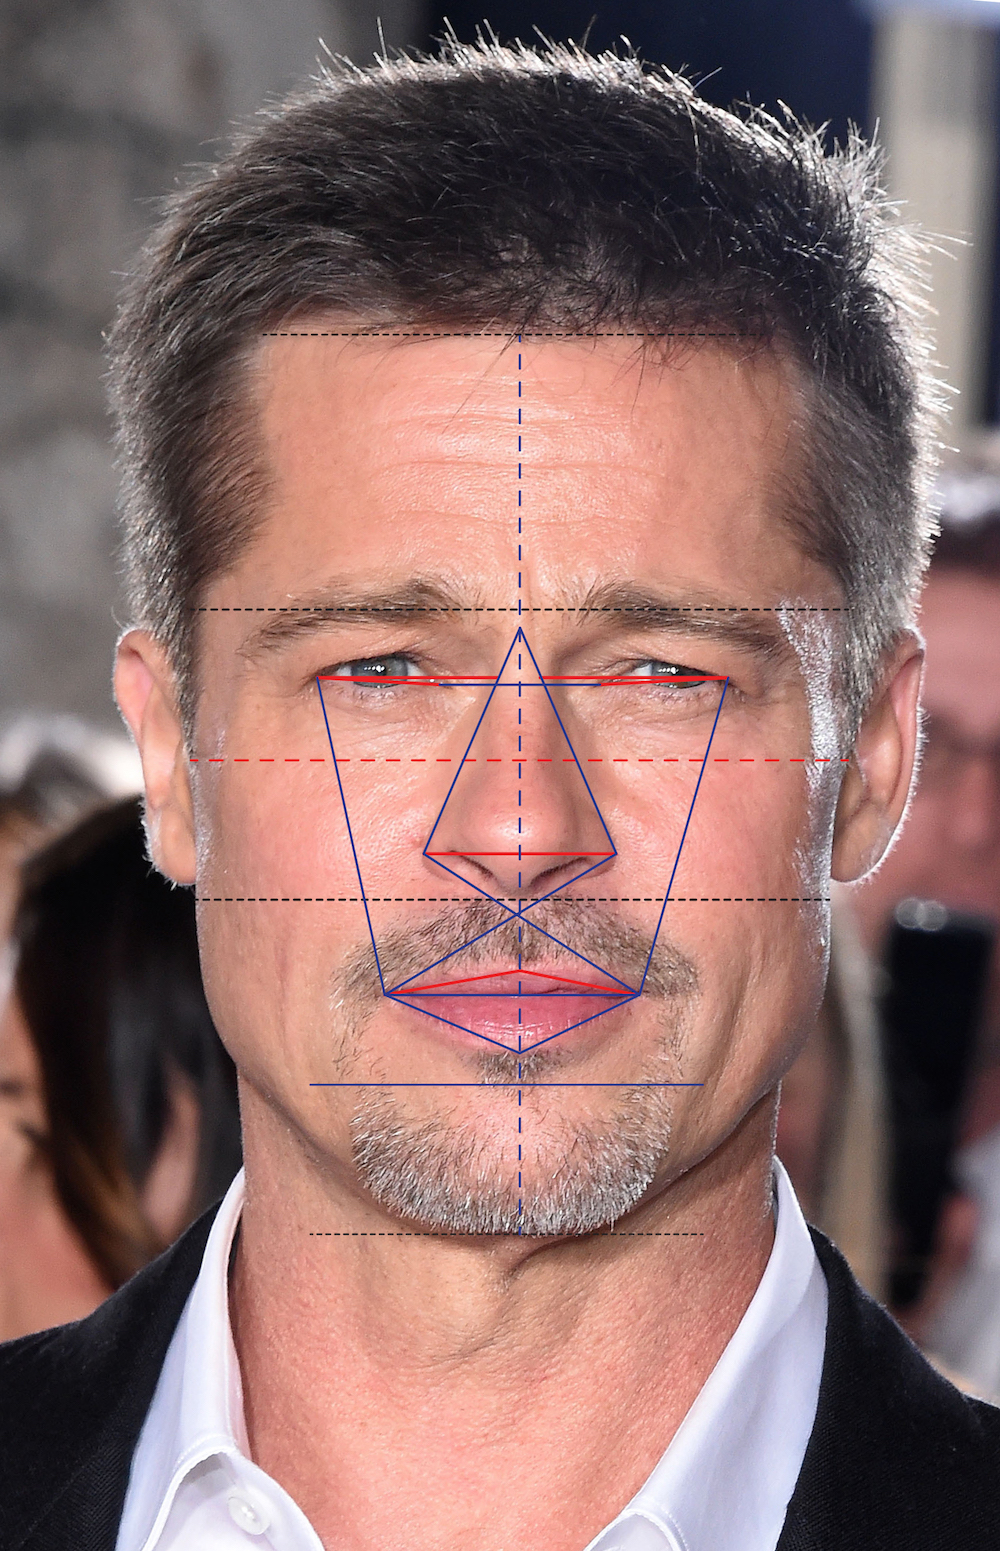 These Are The Most Handsome Men In The World (According To ...